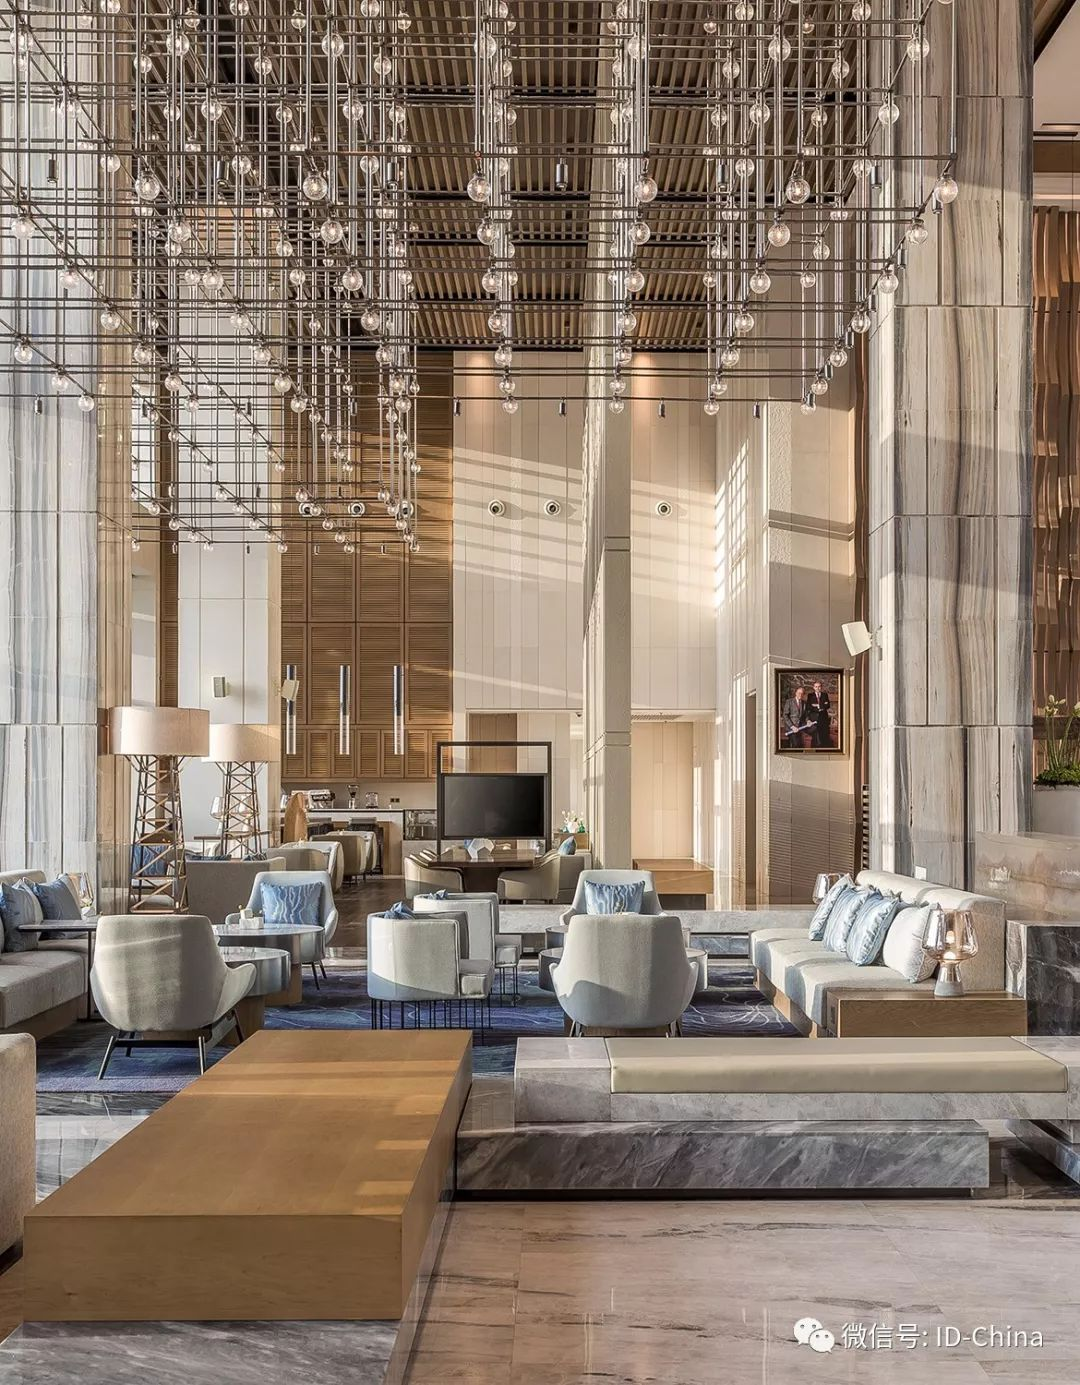 Modern Hotel Lobby Design: Create A Luxurious Yet Modern Hotel Lobby Using These